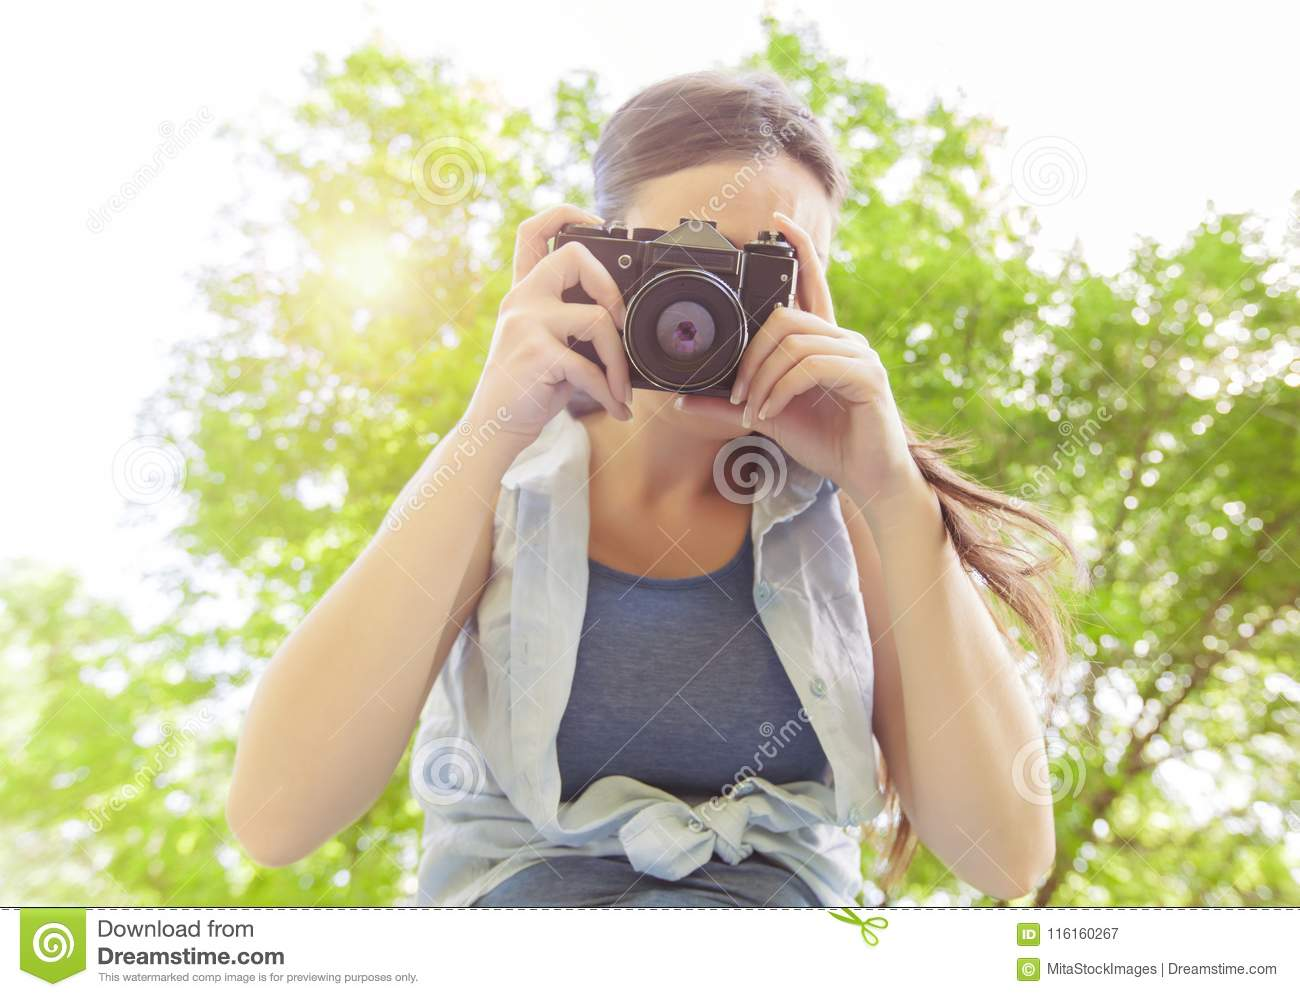 Young woman amateur photographer with vintage camera taking photo in nature